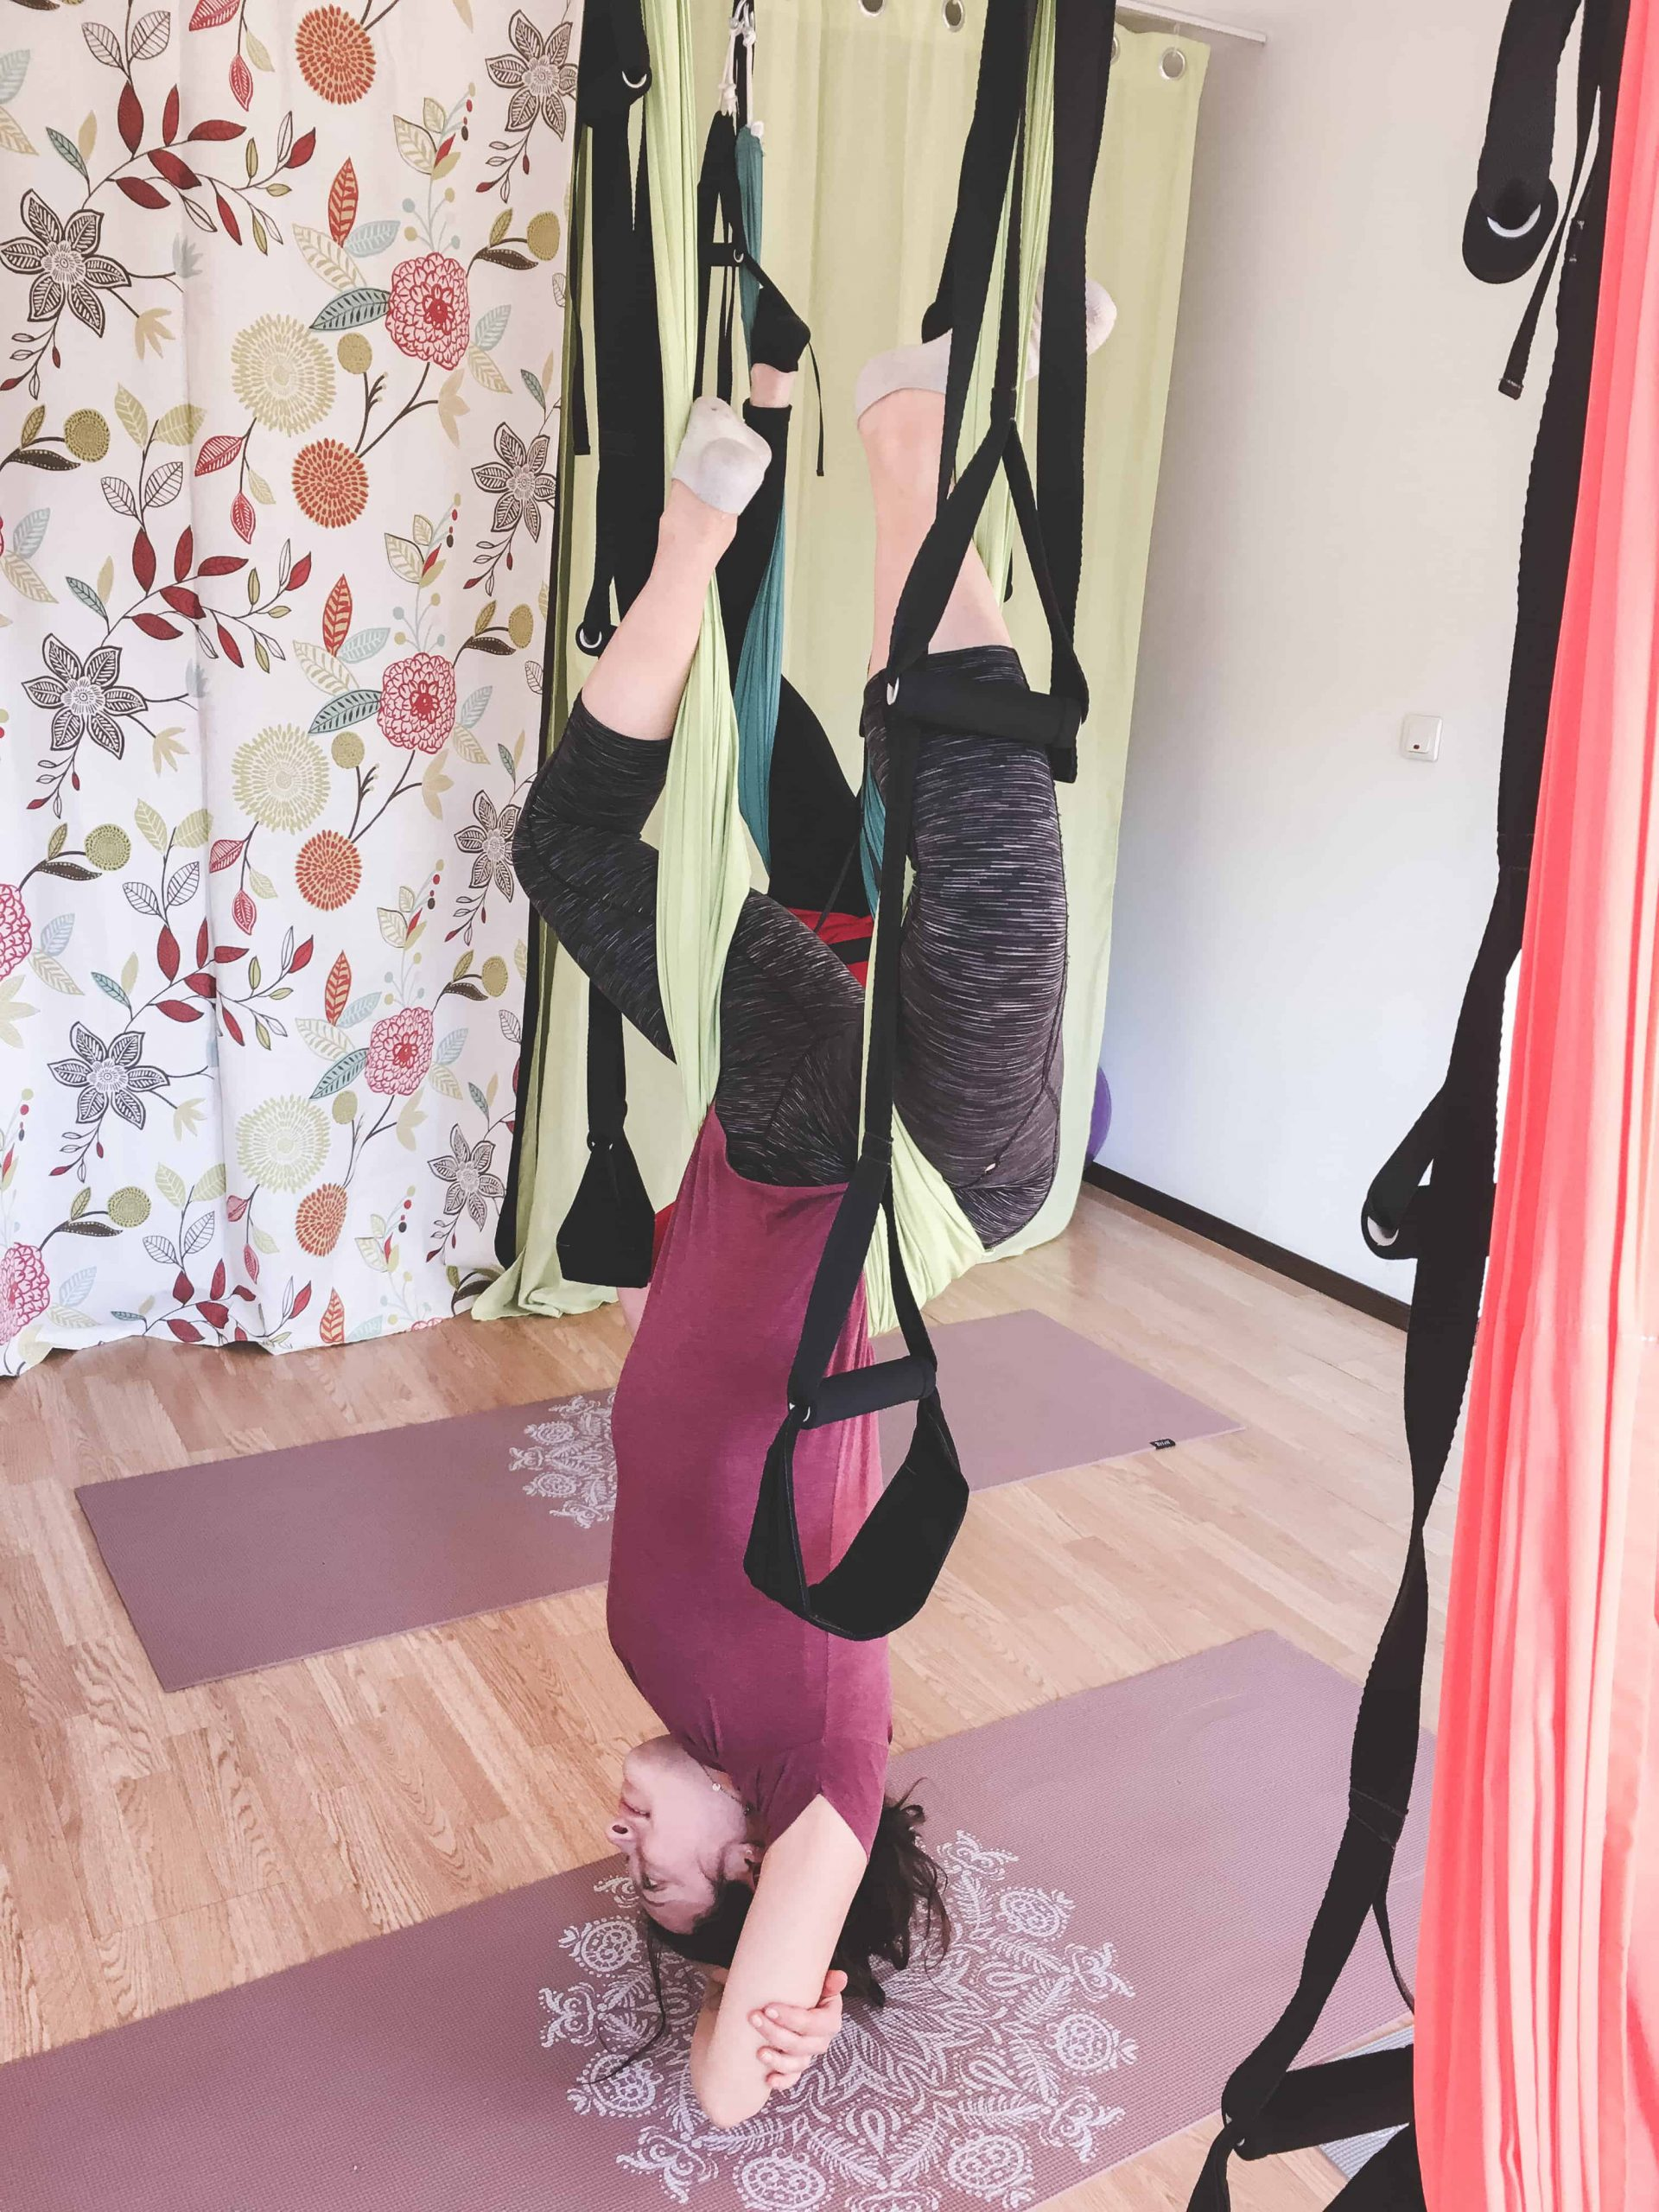 Aerial Yoga at Club Hanuman in Bansko, Bulgaria